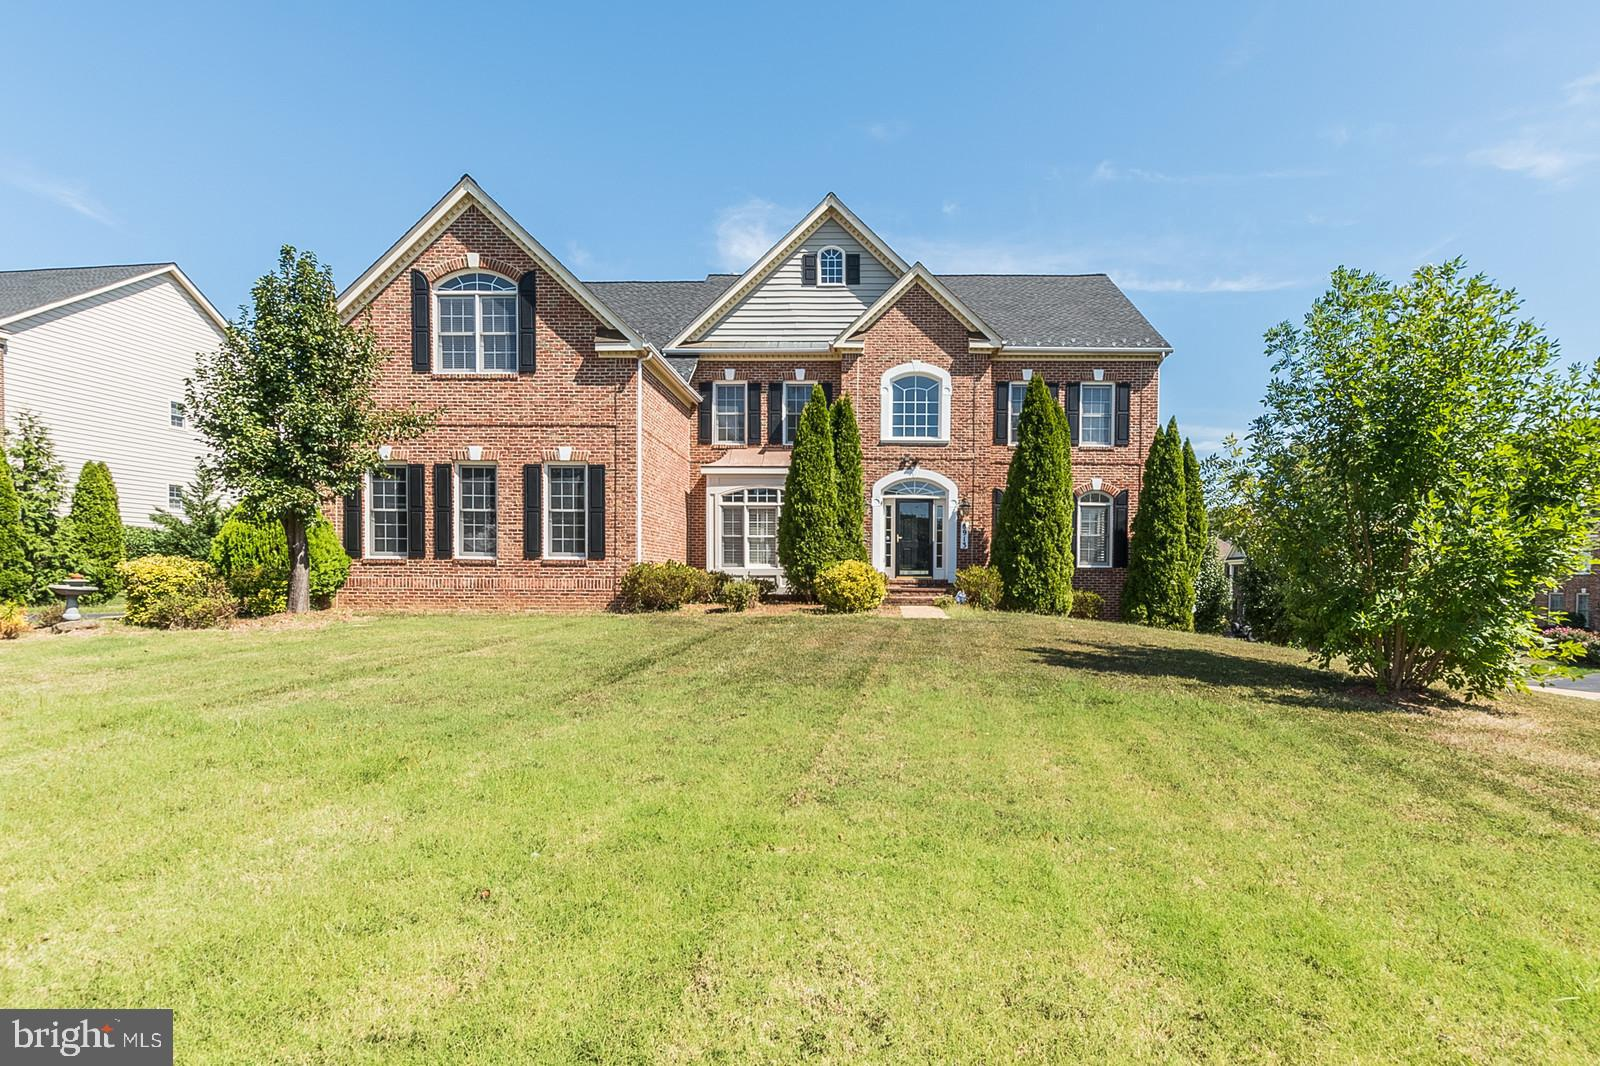 8913 GRIST MILL WOODS COURT, ALEXANDRIA, VA 22309